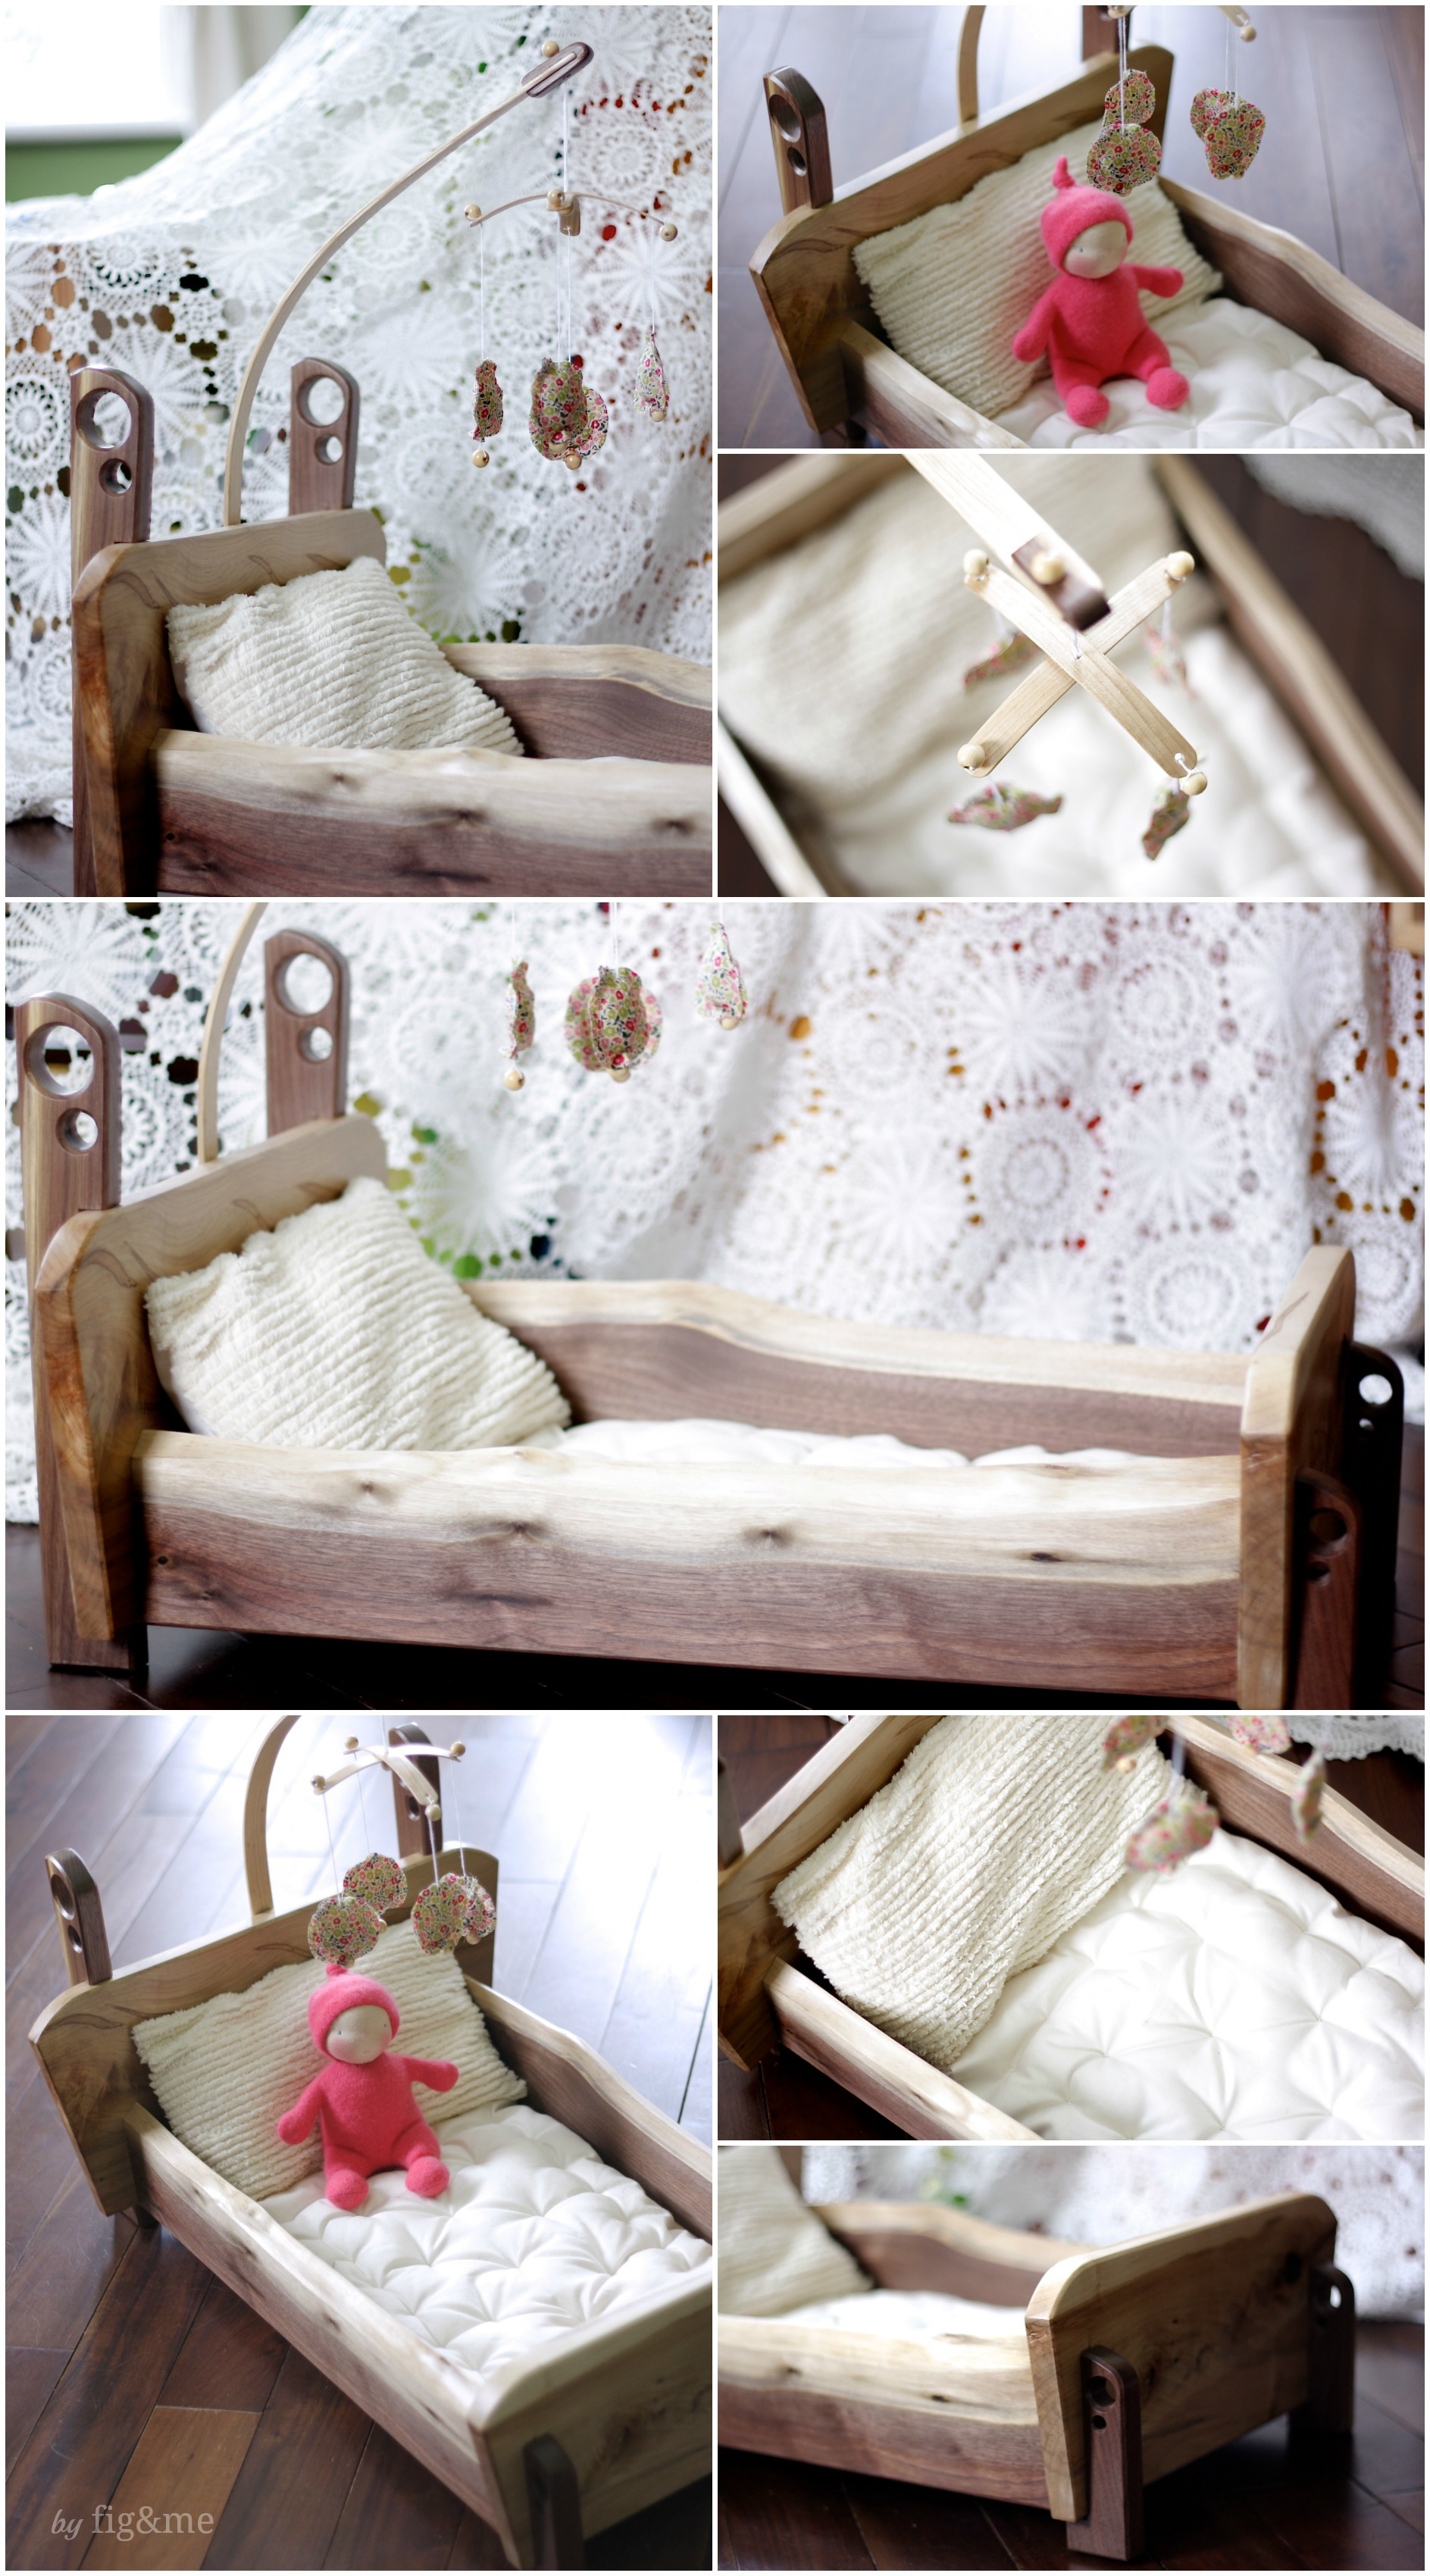 Handcrafted doll crib and bedding set, by Fig&me.